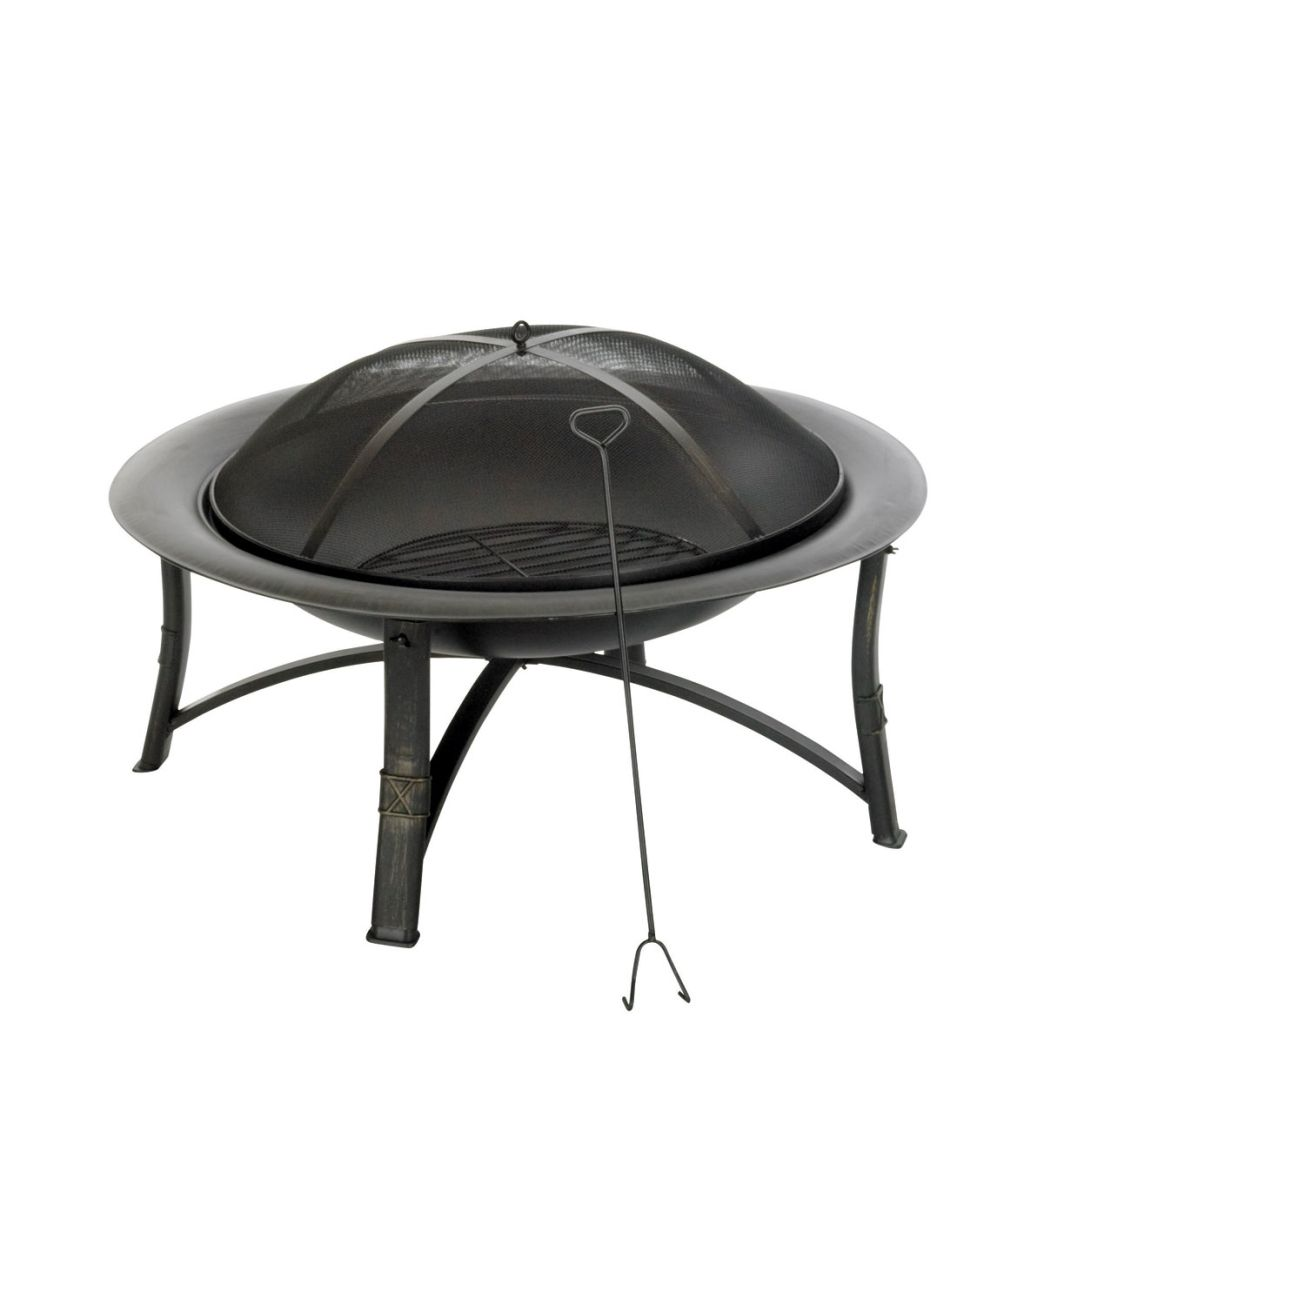 35 in Round Fire Pit from Living Accents at Ace Hardware ... on Ace Hardware Fire Pit id=55925